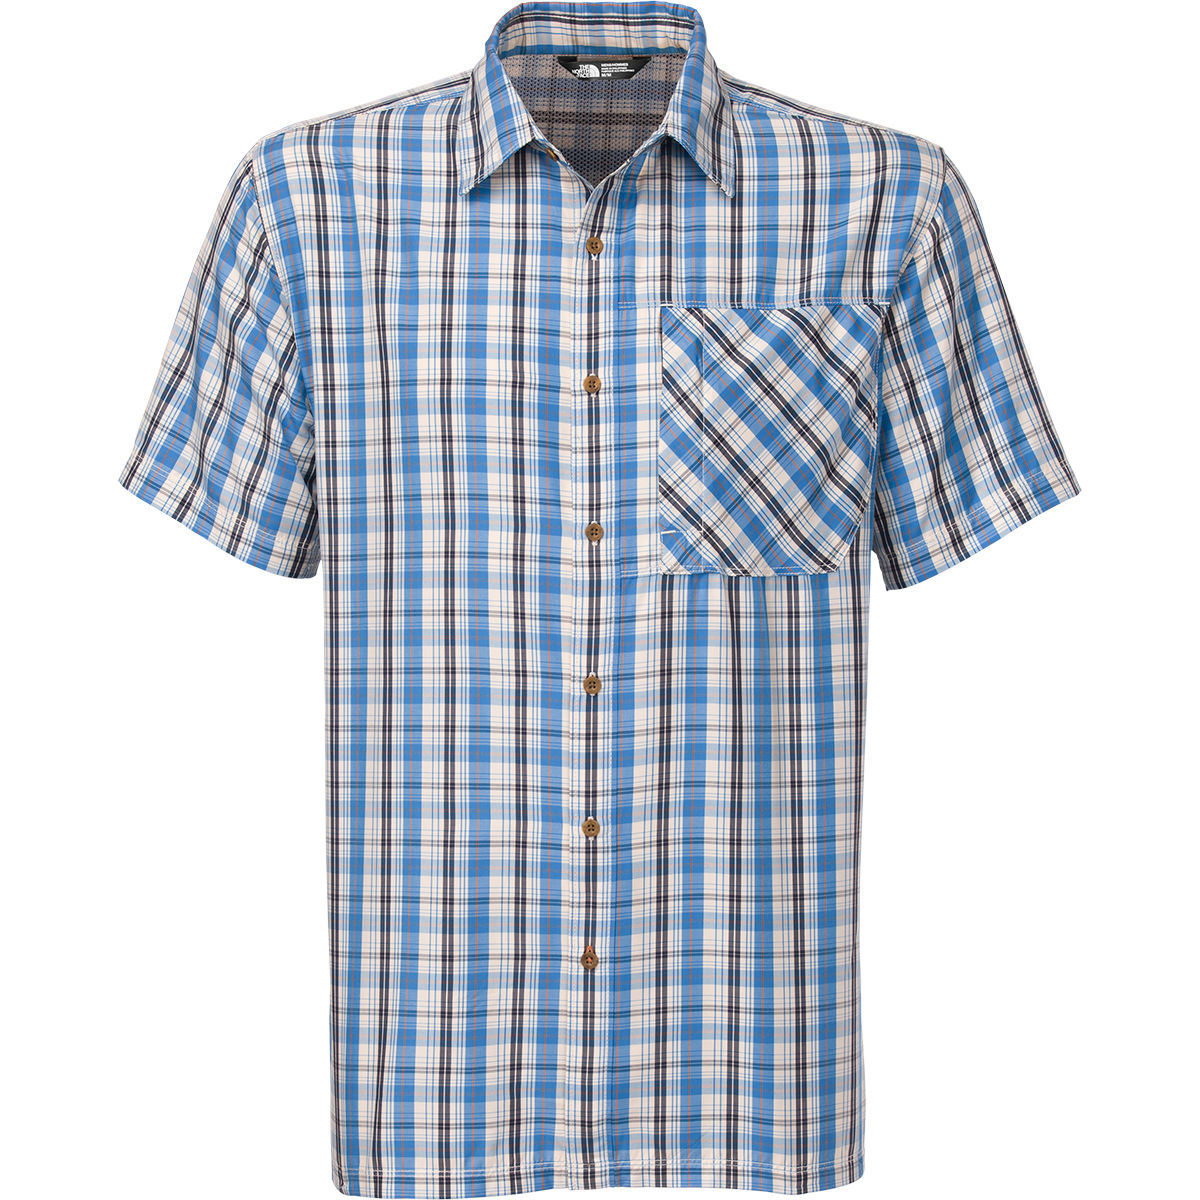 The North Face Short-Sleeve Paramount Shirt